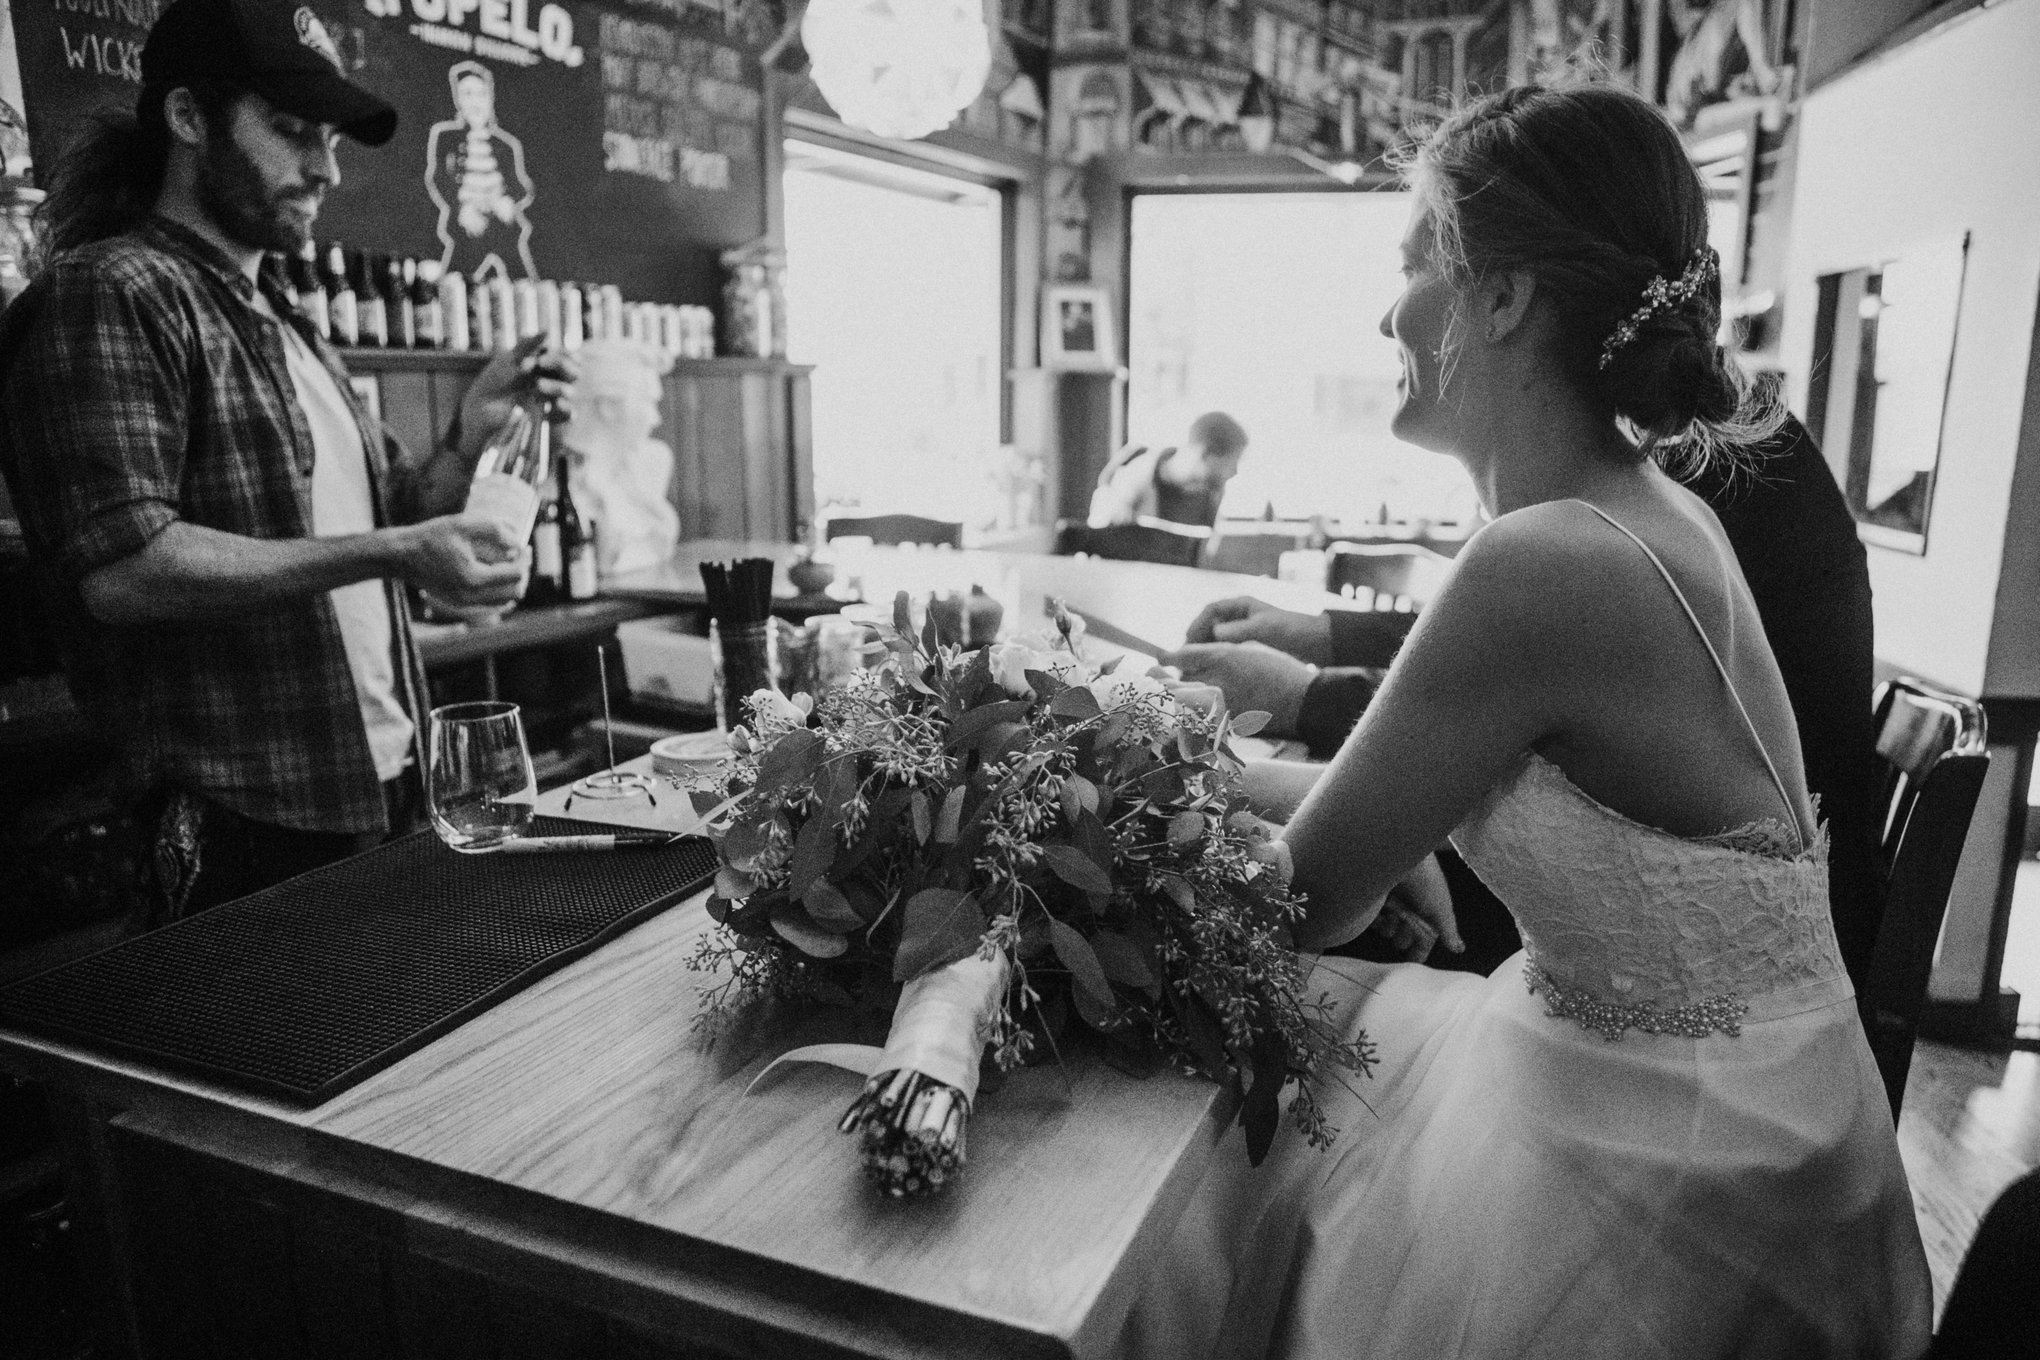 Cambridge_Puritan_Co_Wedding_Photographer_Harvard_35.jpg